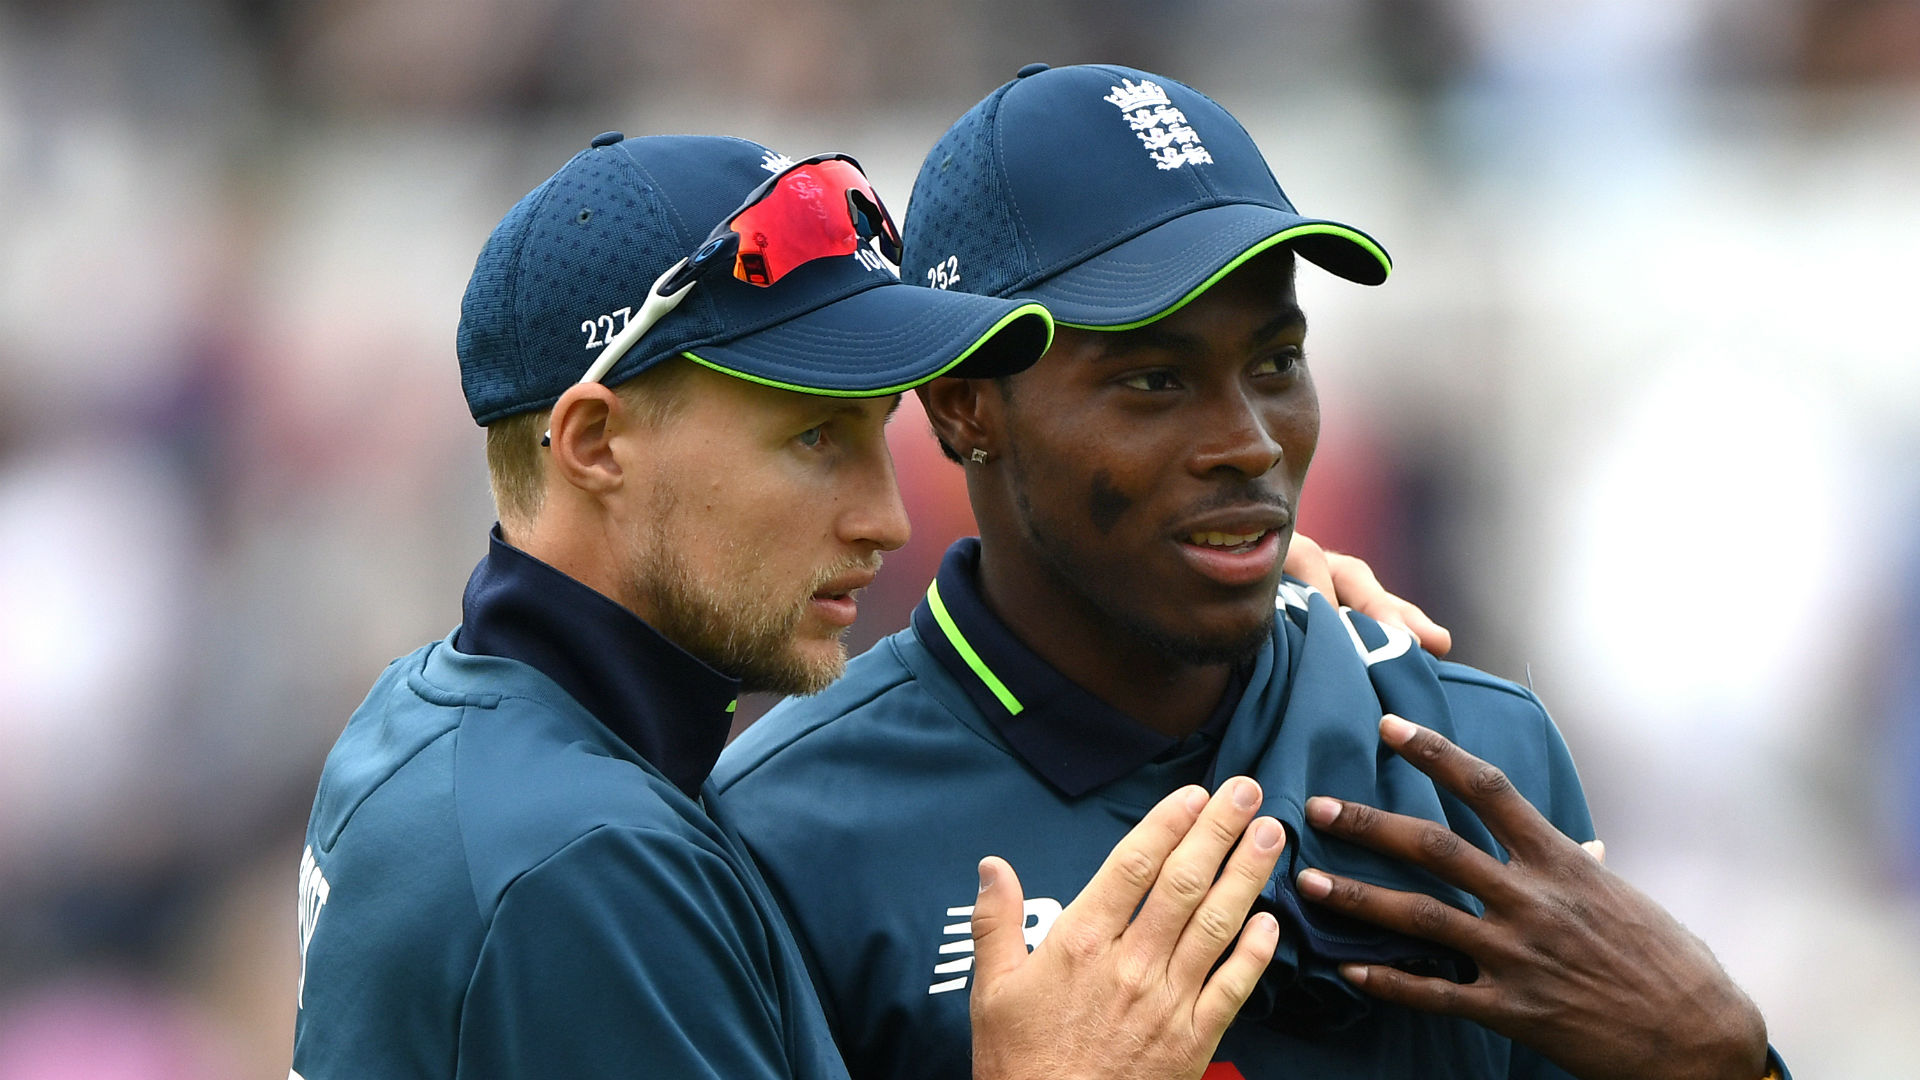 Archer brings X-factor to England attack – Root